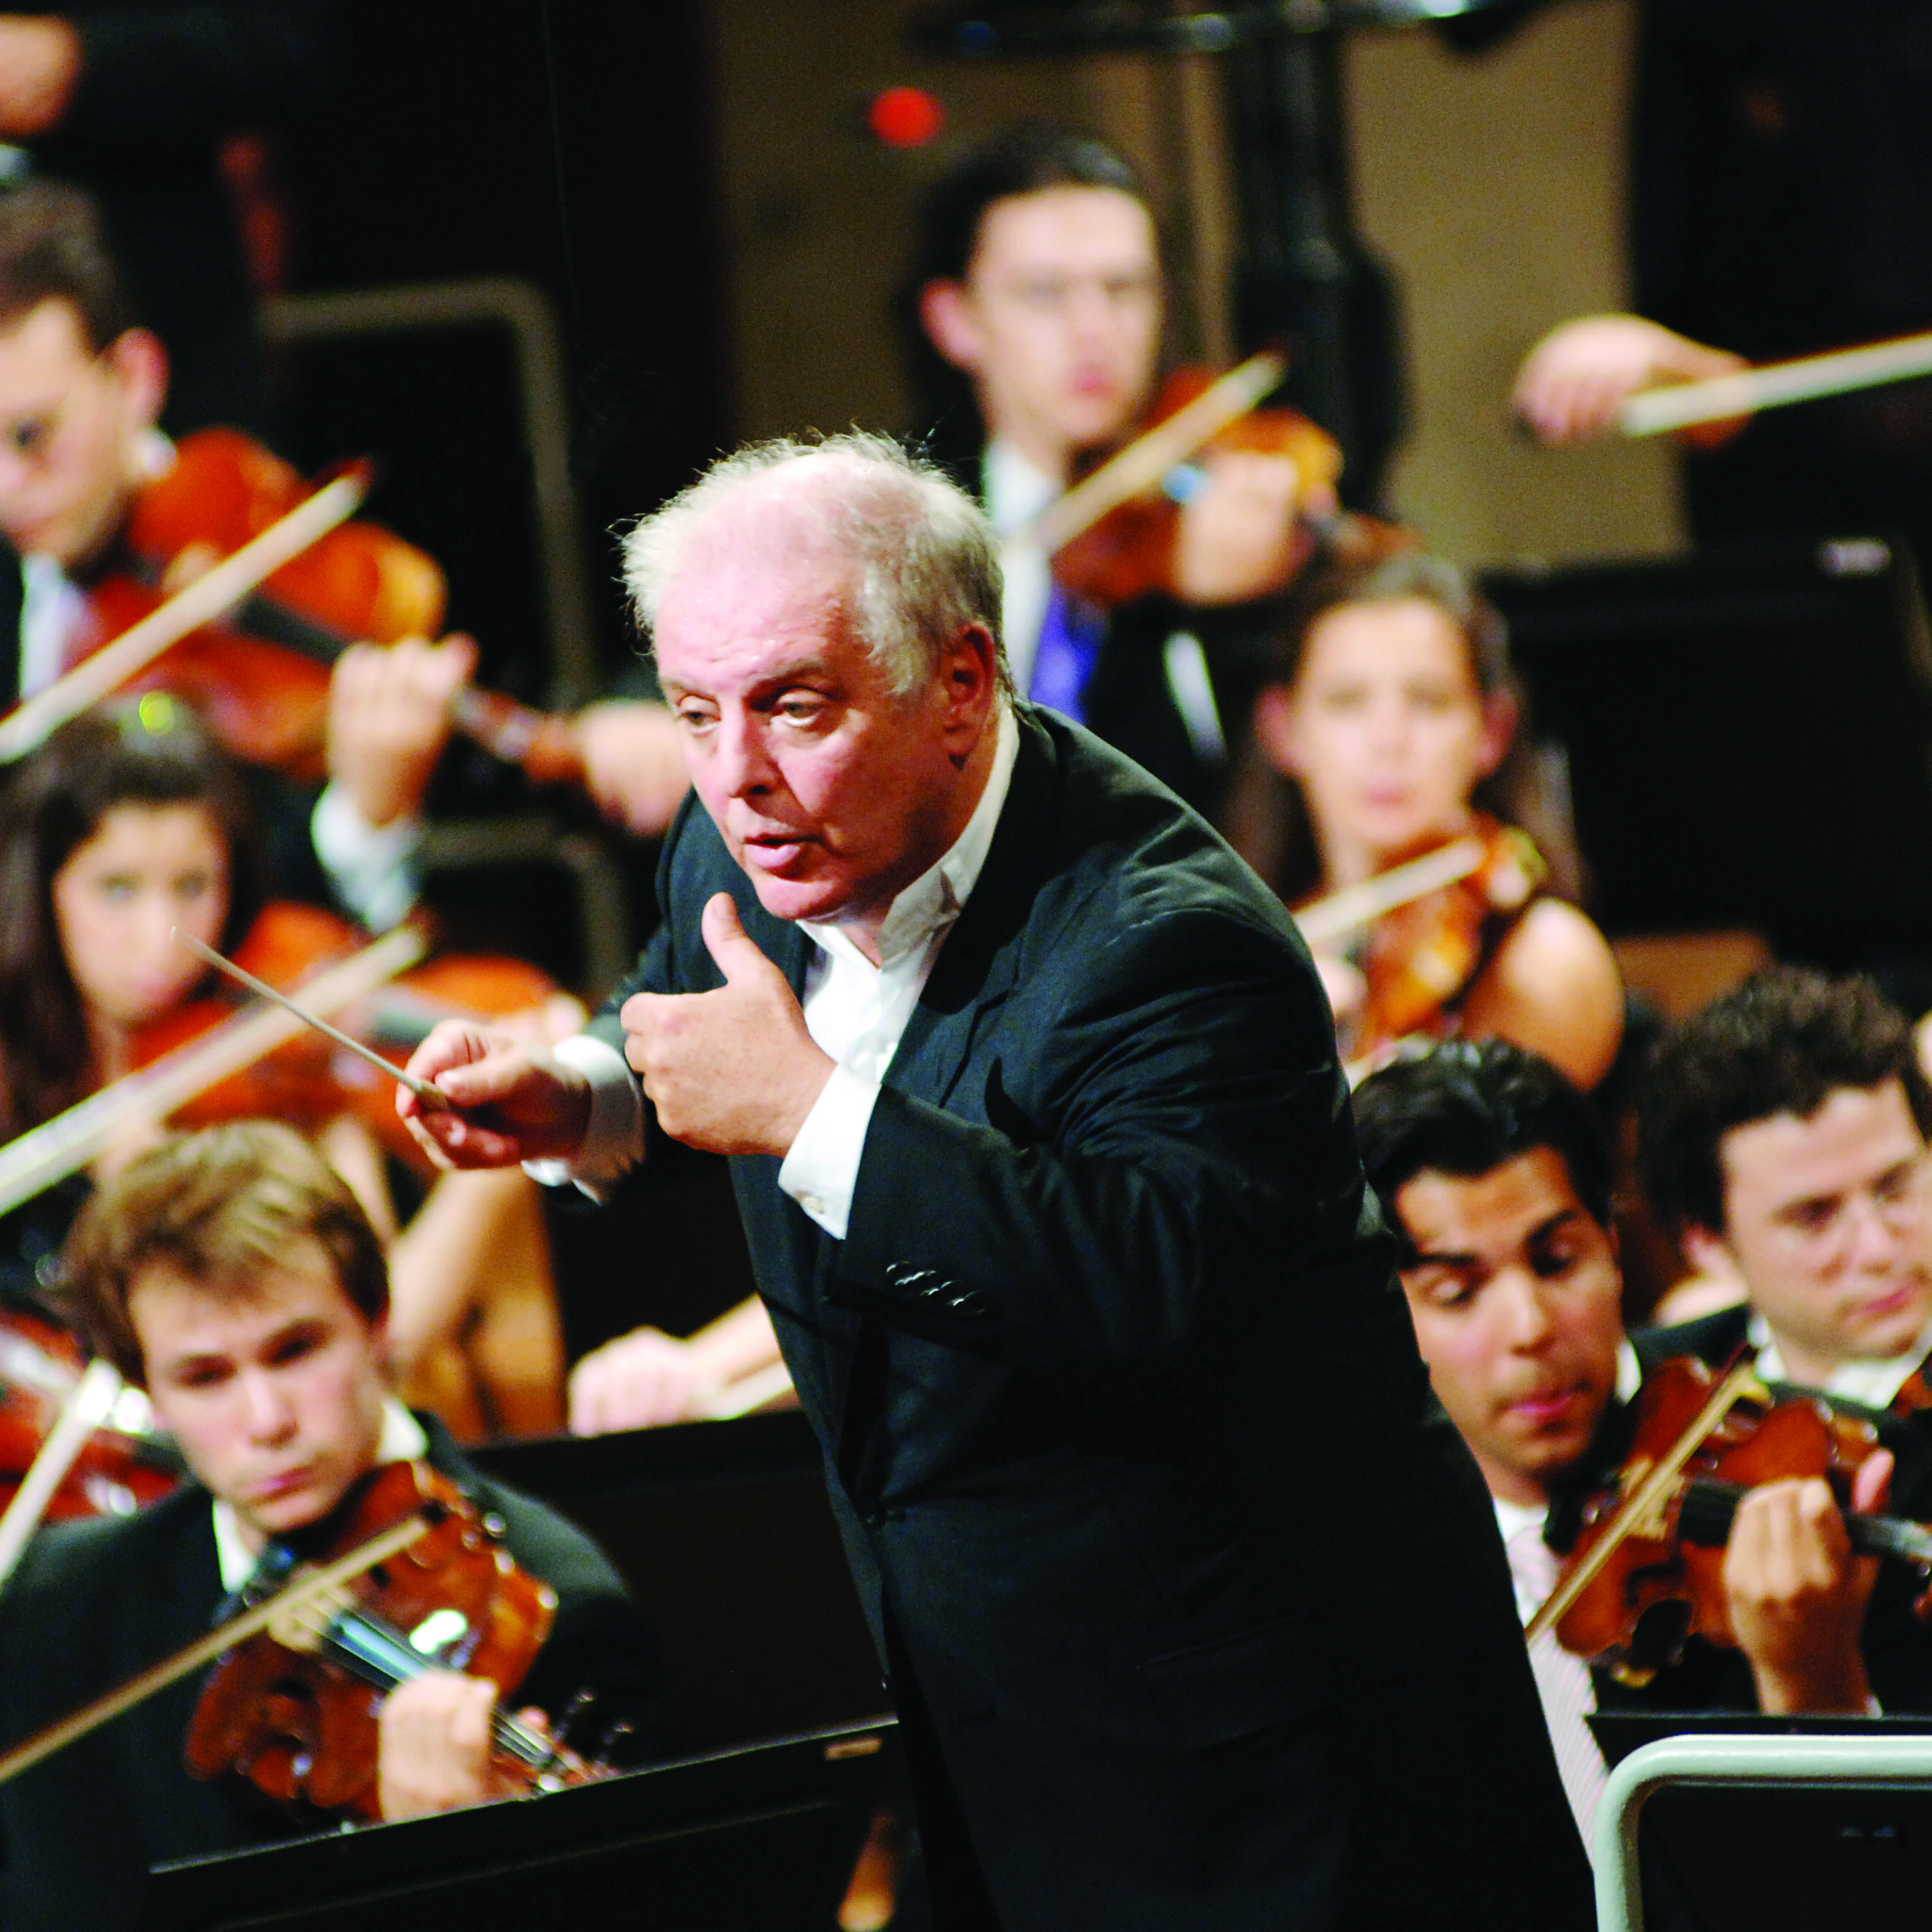 Daniel Barenboim and the West-Eastern Divan Orchestra